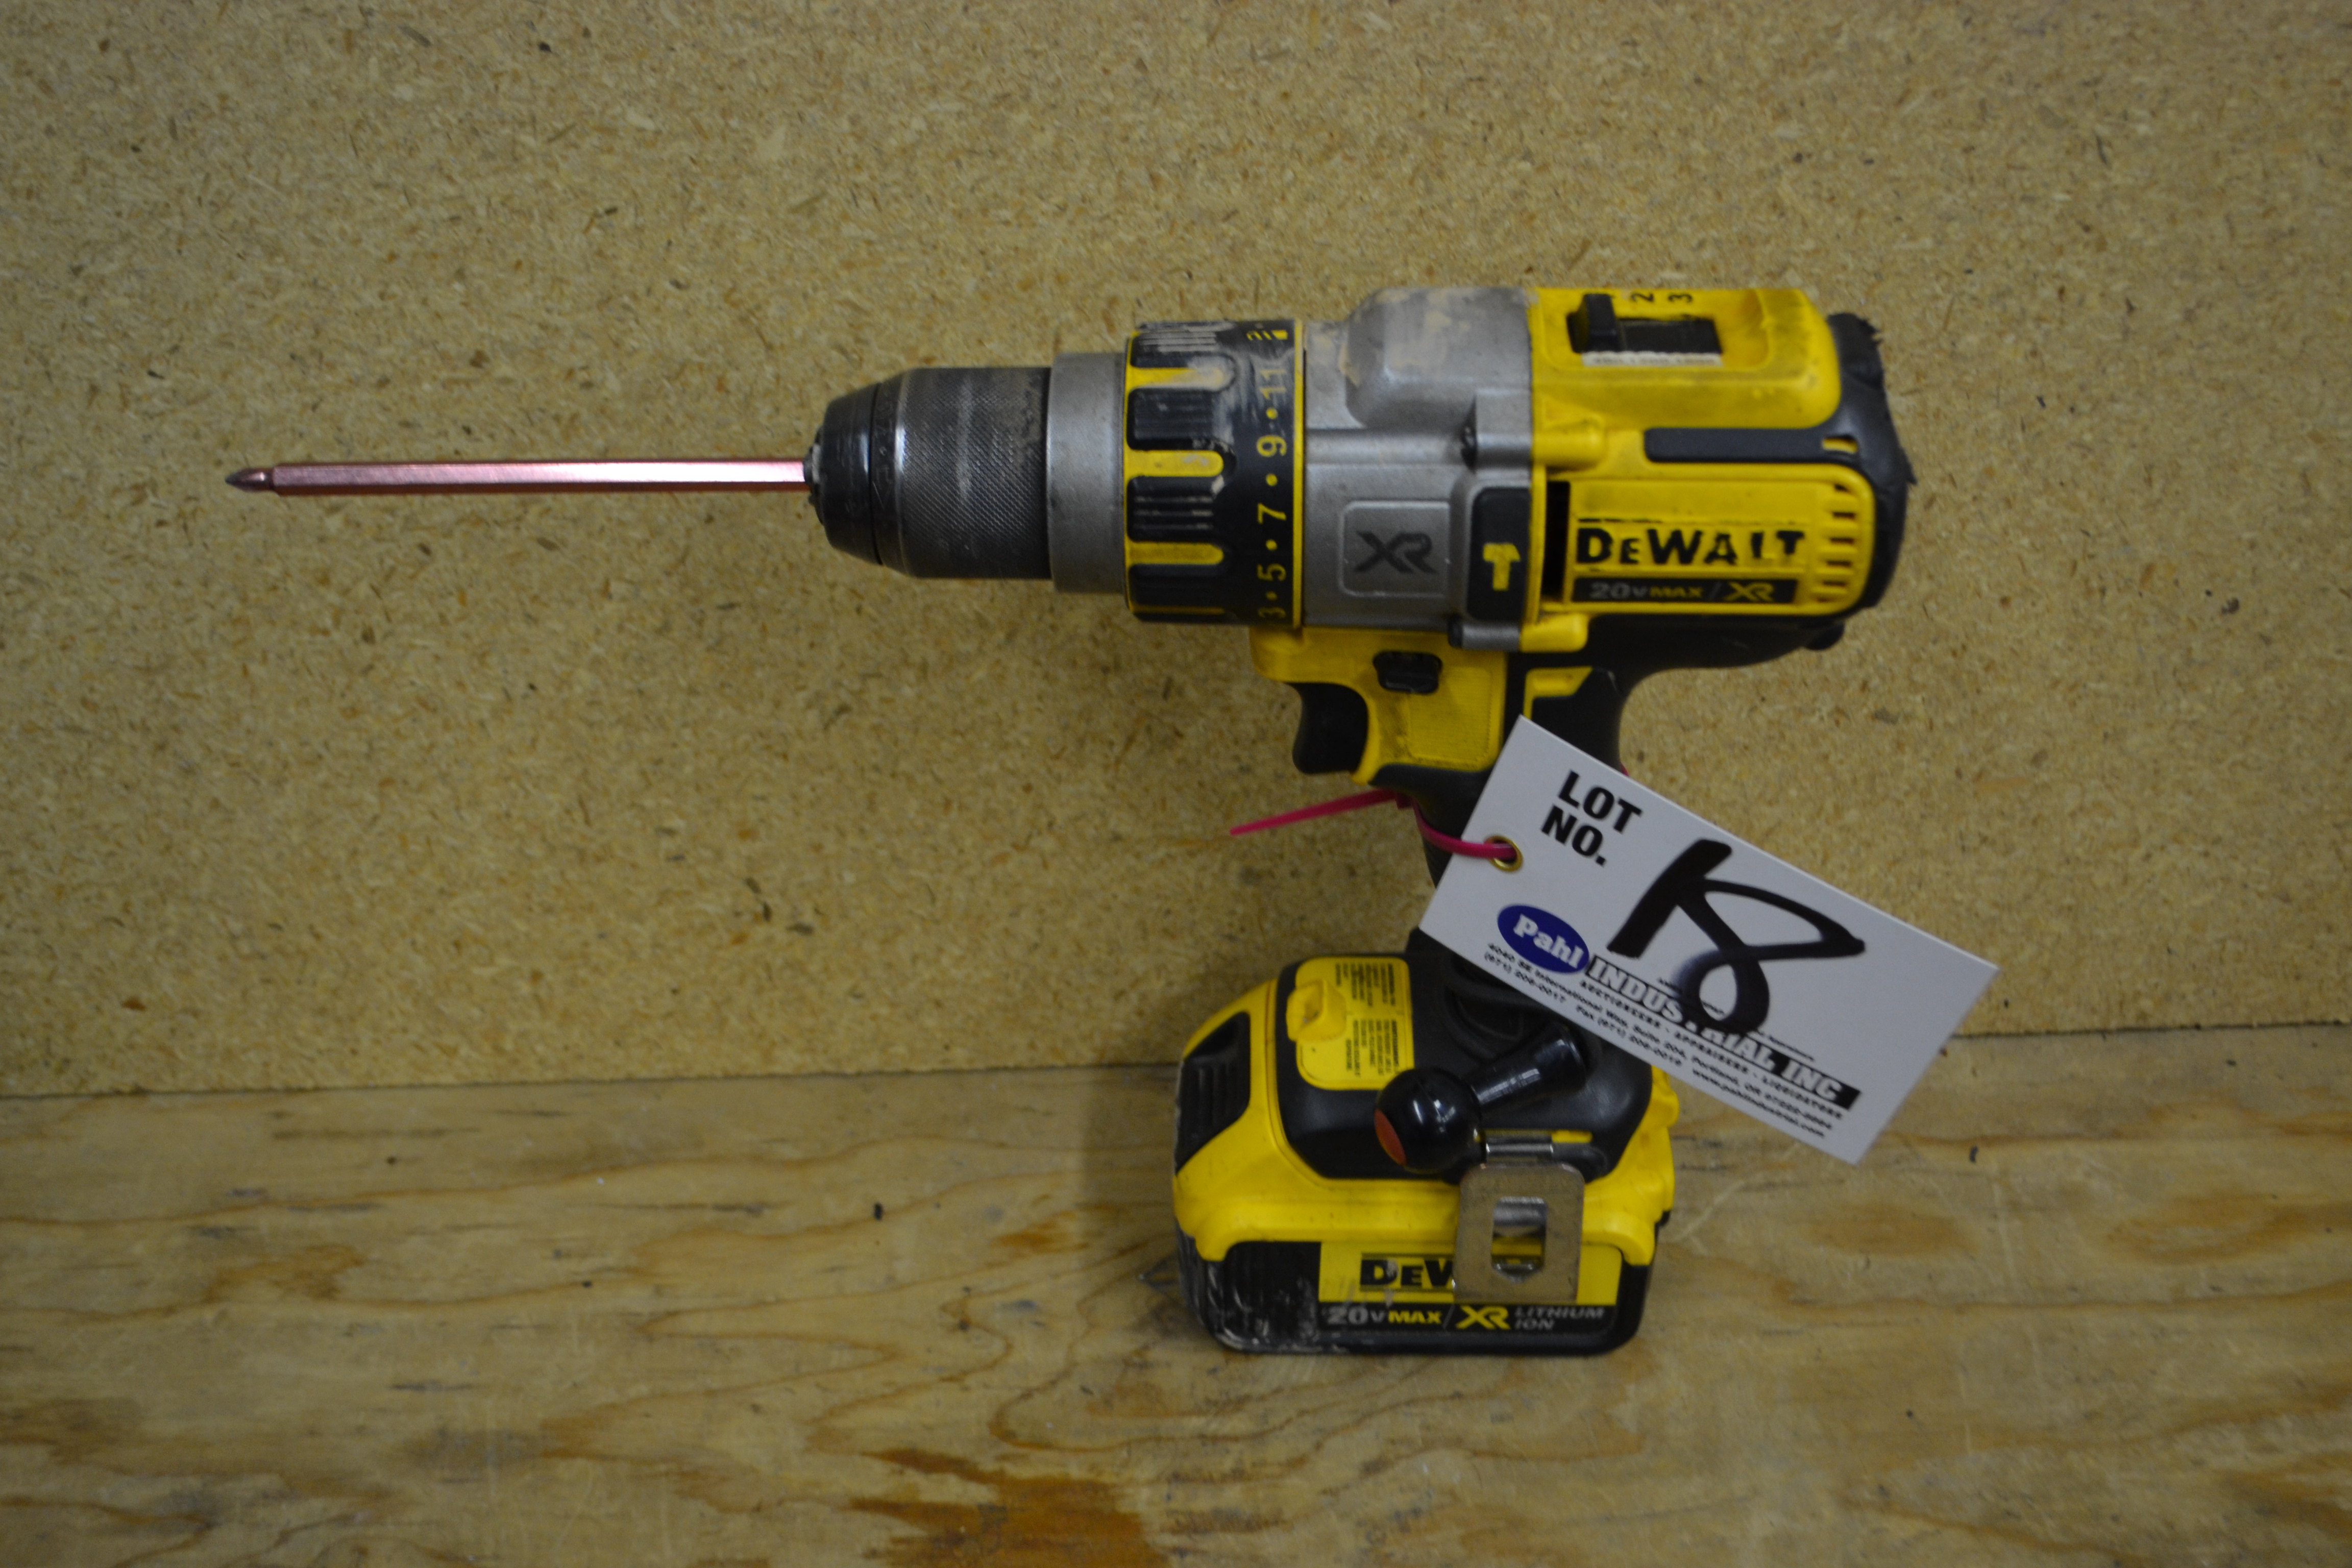 """DeWalt DCD995 20V Cordless Drill 1/2"""" Drive with battery"""